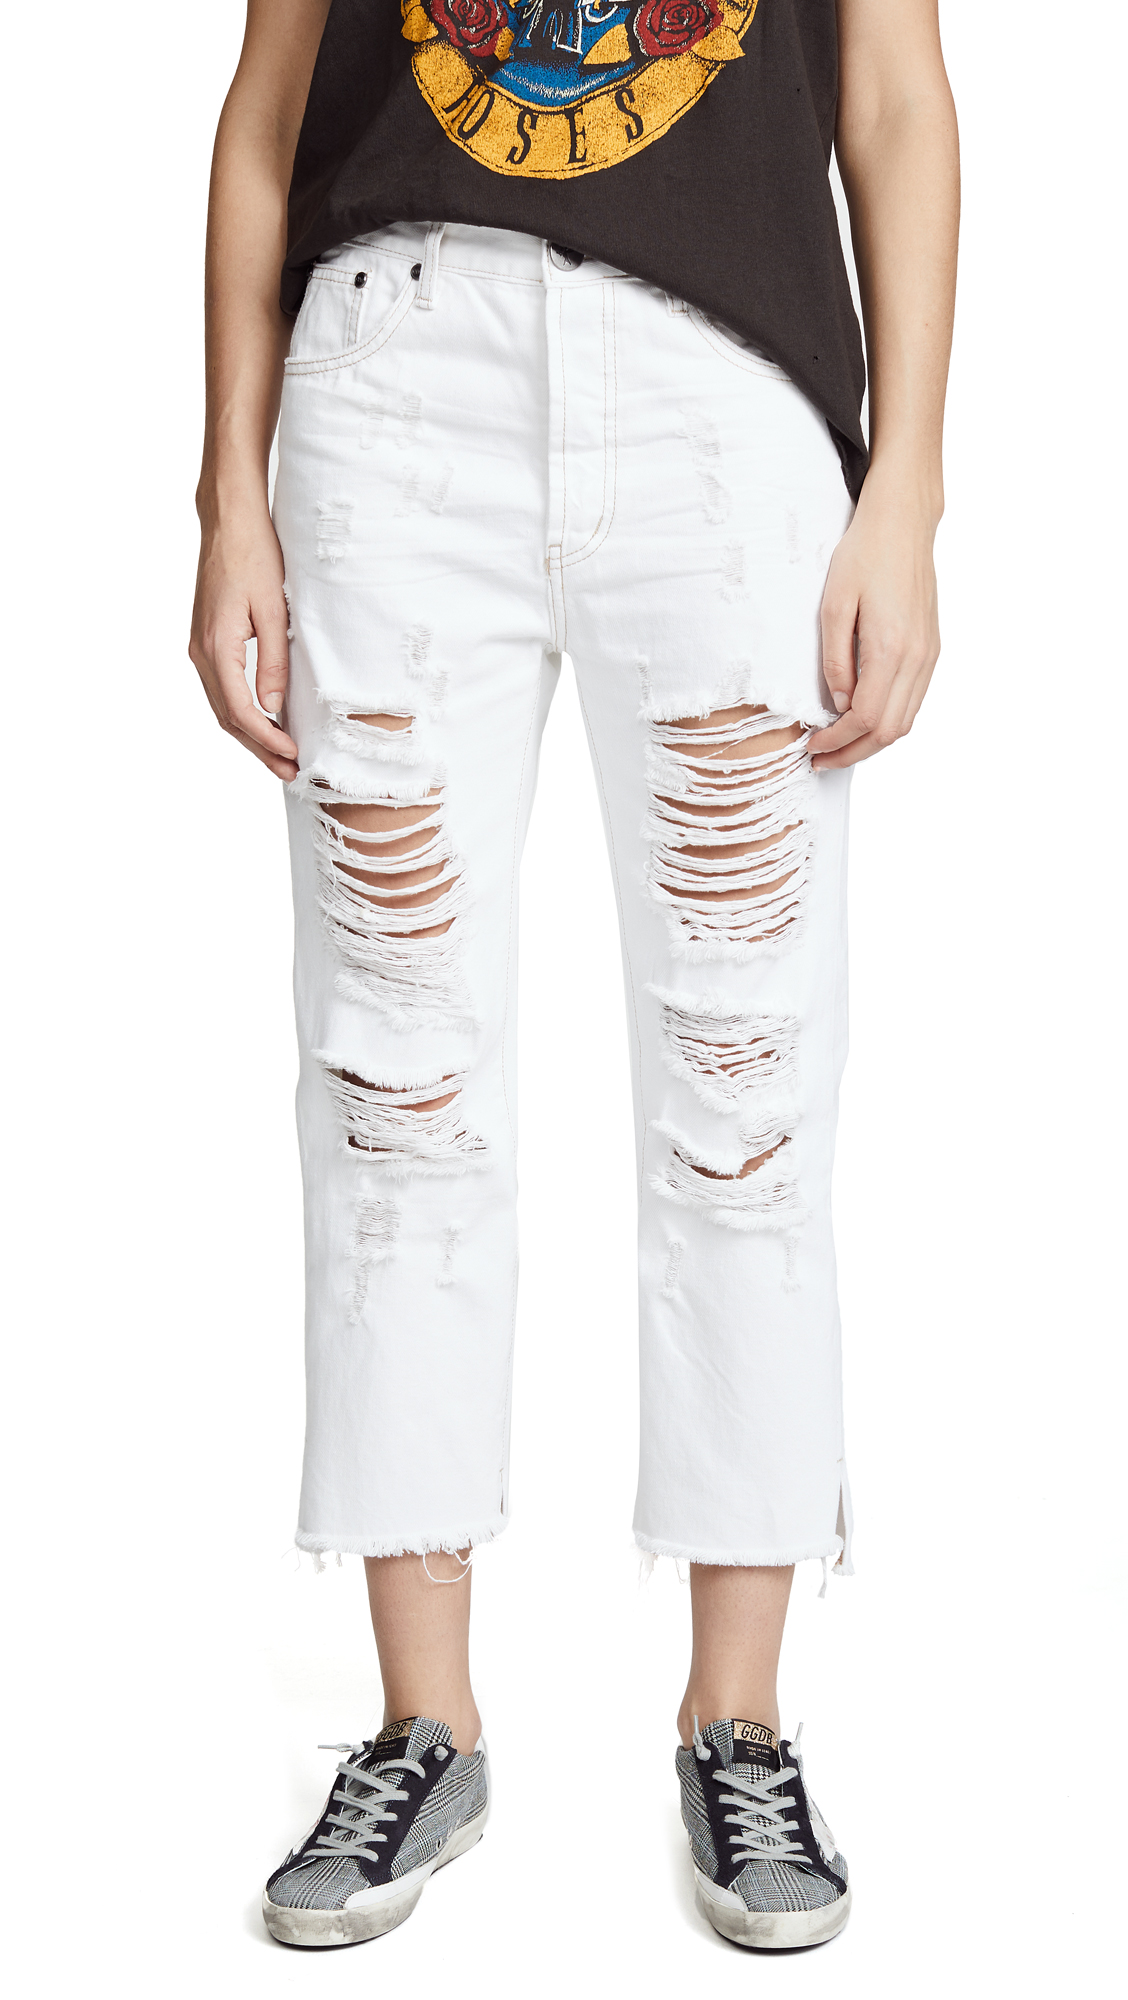 One Teaspoon Low Waist Hooligans Jeans In Cococash